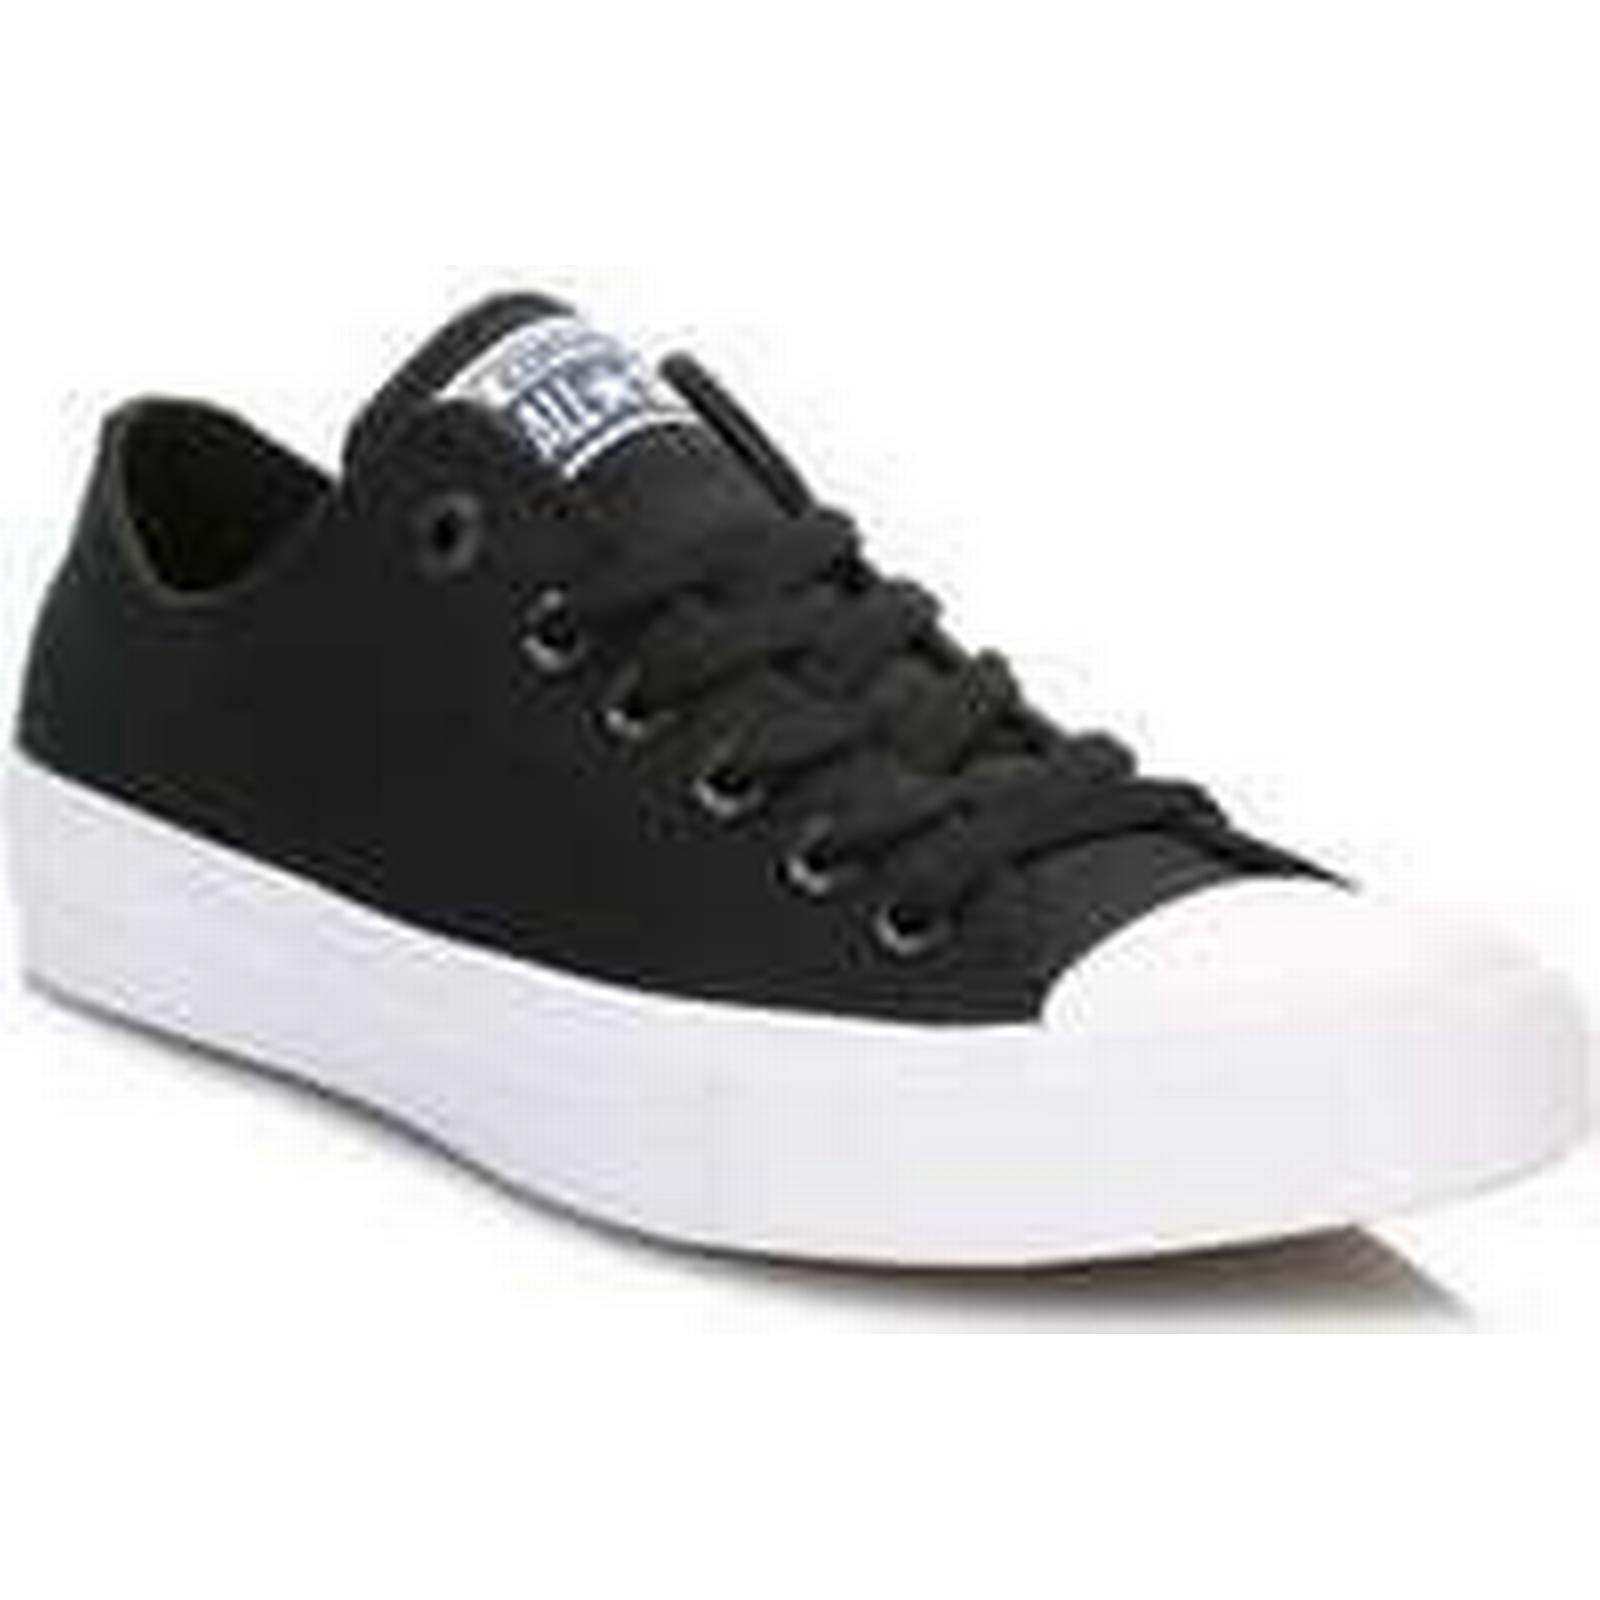 Spartoo.co.uk Converse All Star Chuck men's Taylor II Black Trainers men's Chuck Shoes (Trainers) in Black 928625